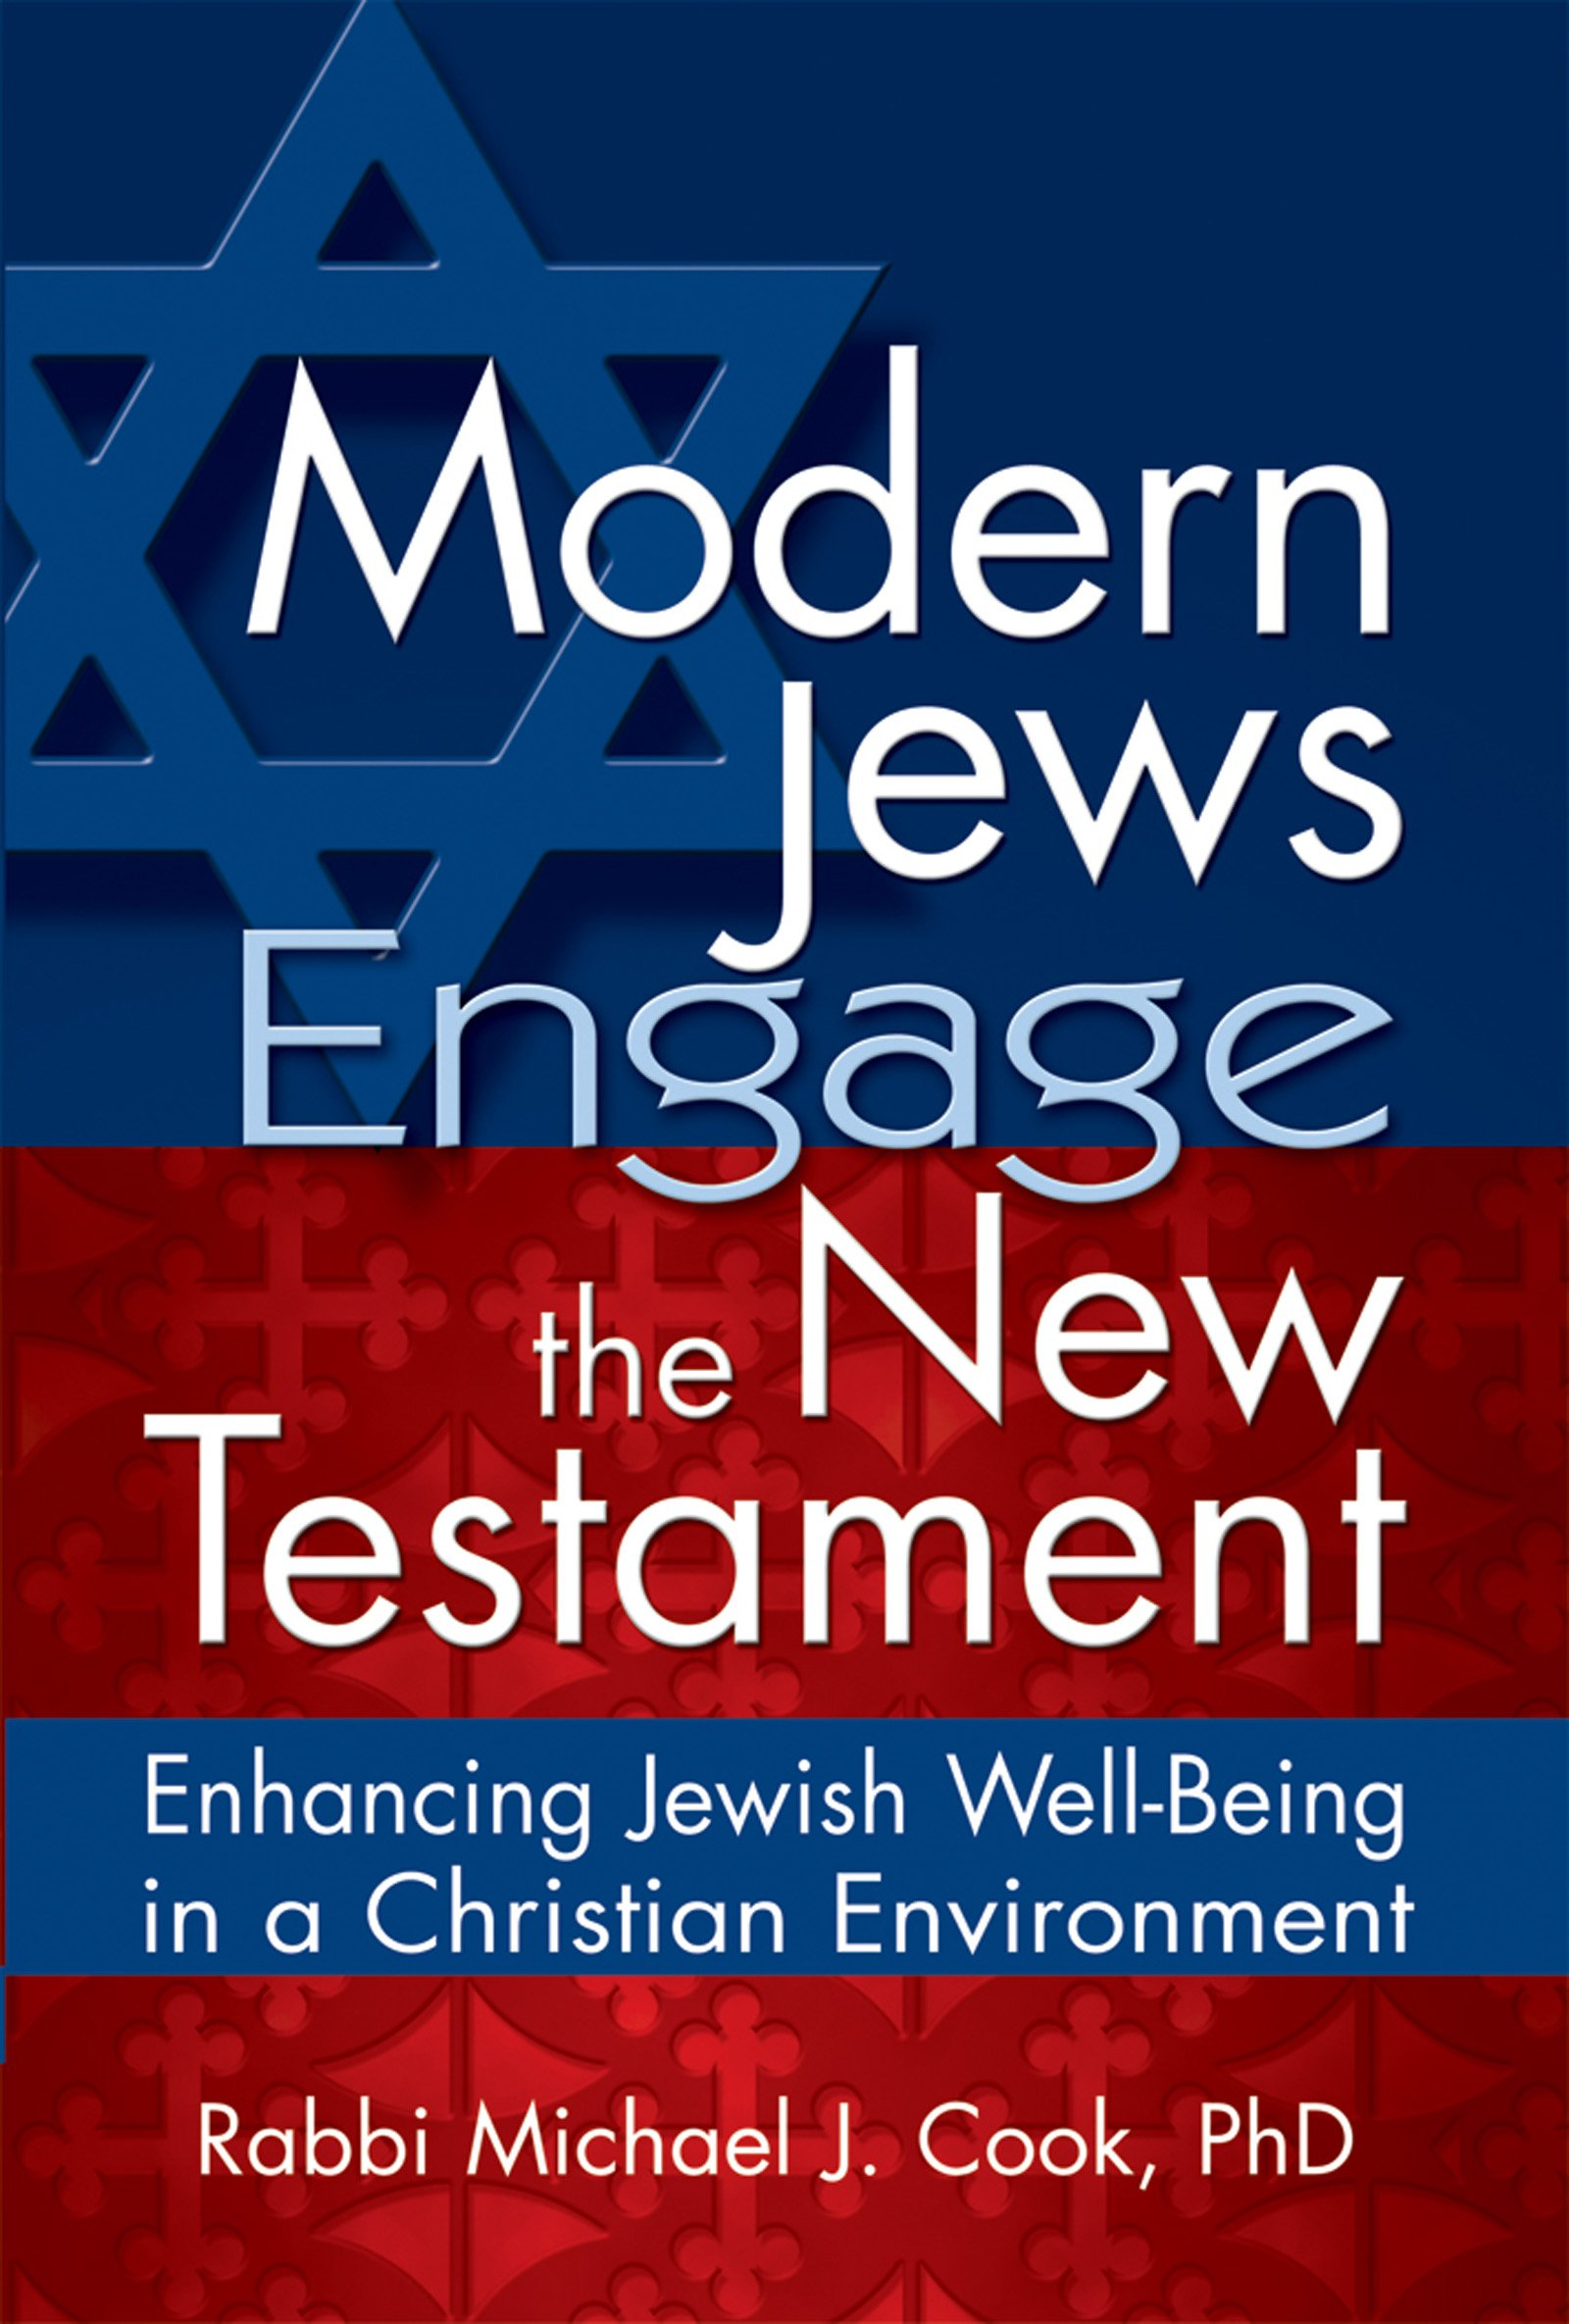 Modern jews engage the new testament enhancing jewish well being modern jews engage the new testament enhancing jewish well being in a christian environment rabbi michael j cook 9781580233132 amazon books fandeluxe Gallery